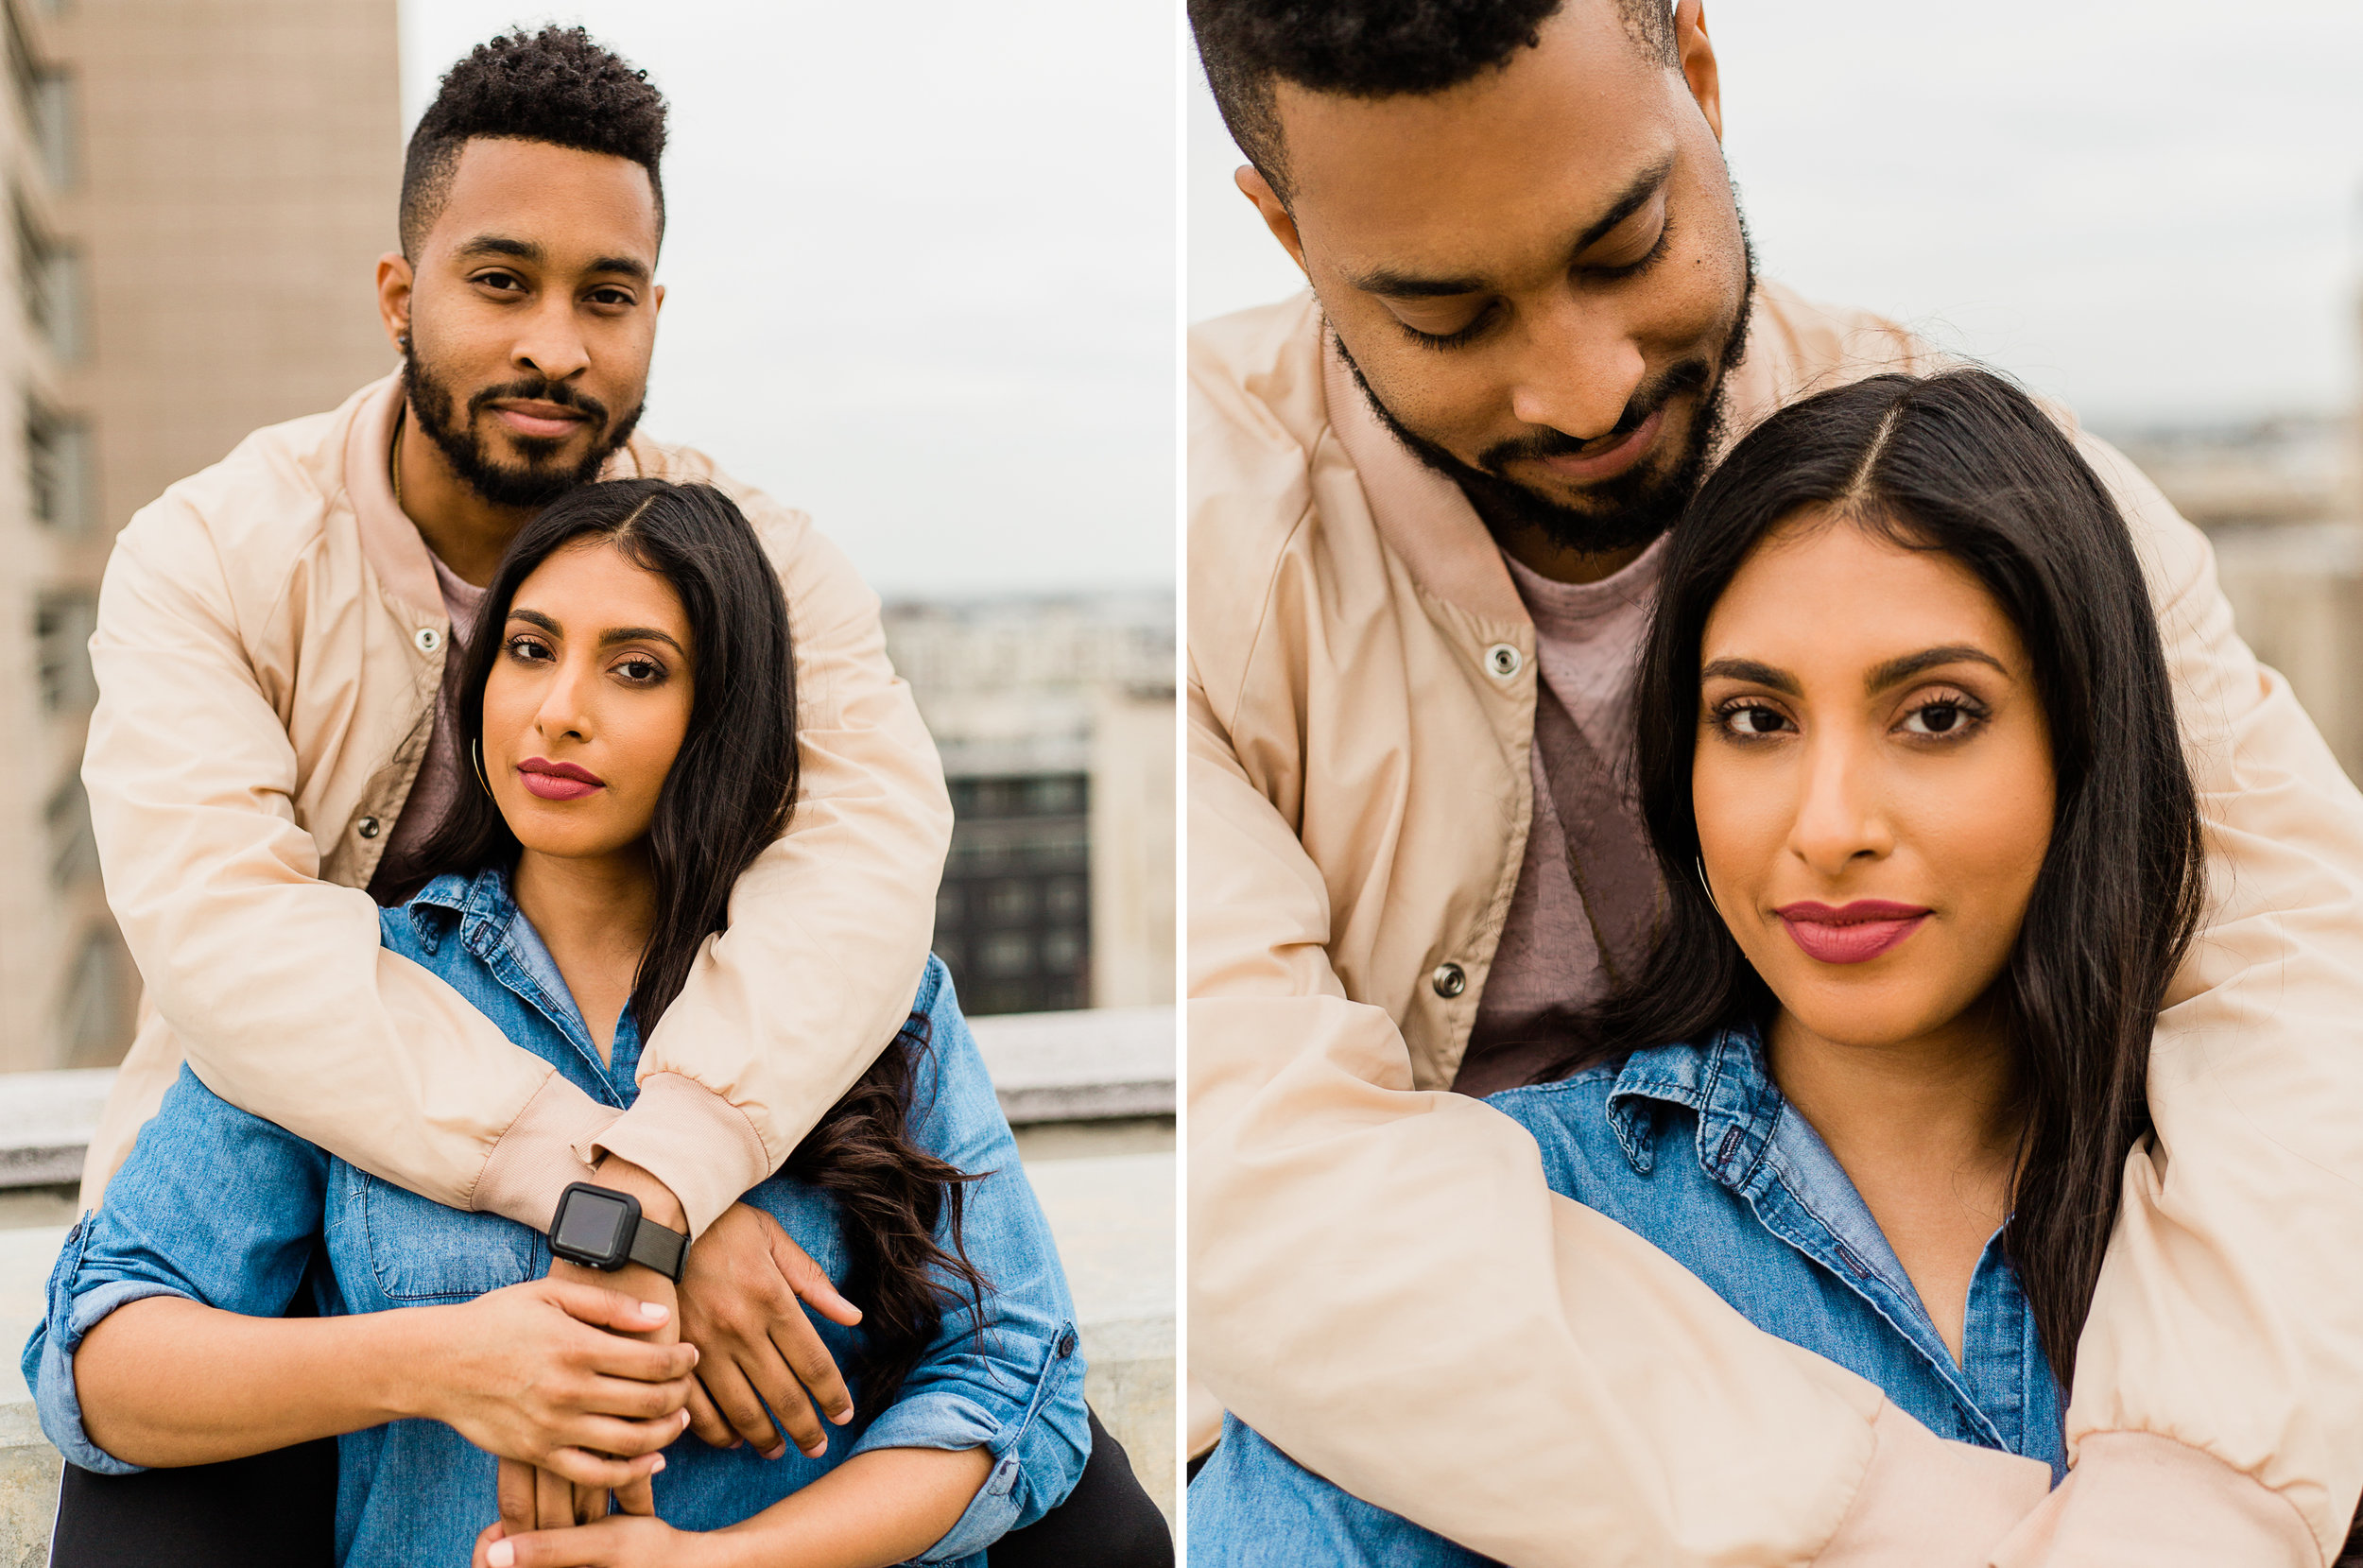 Downtown Los Angeles Rooftop Couple Shoot.jpg